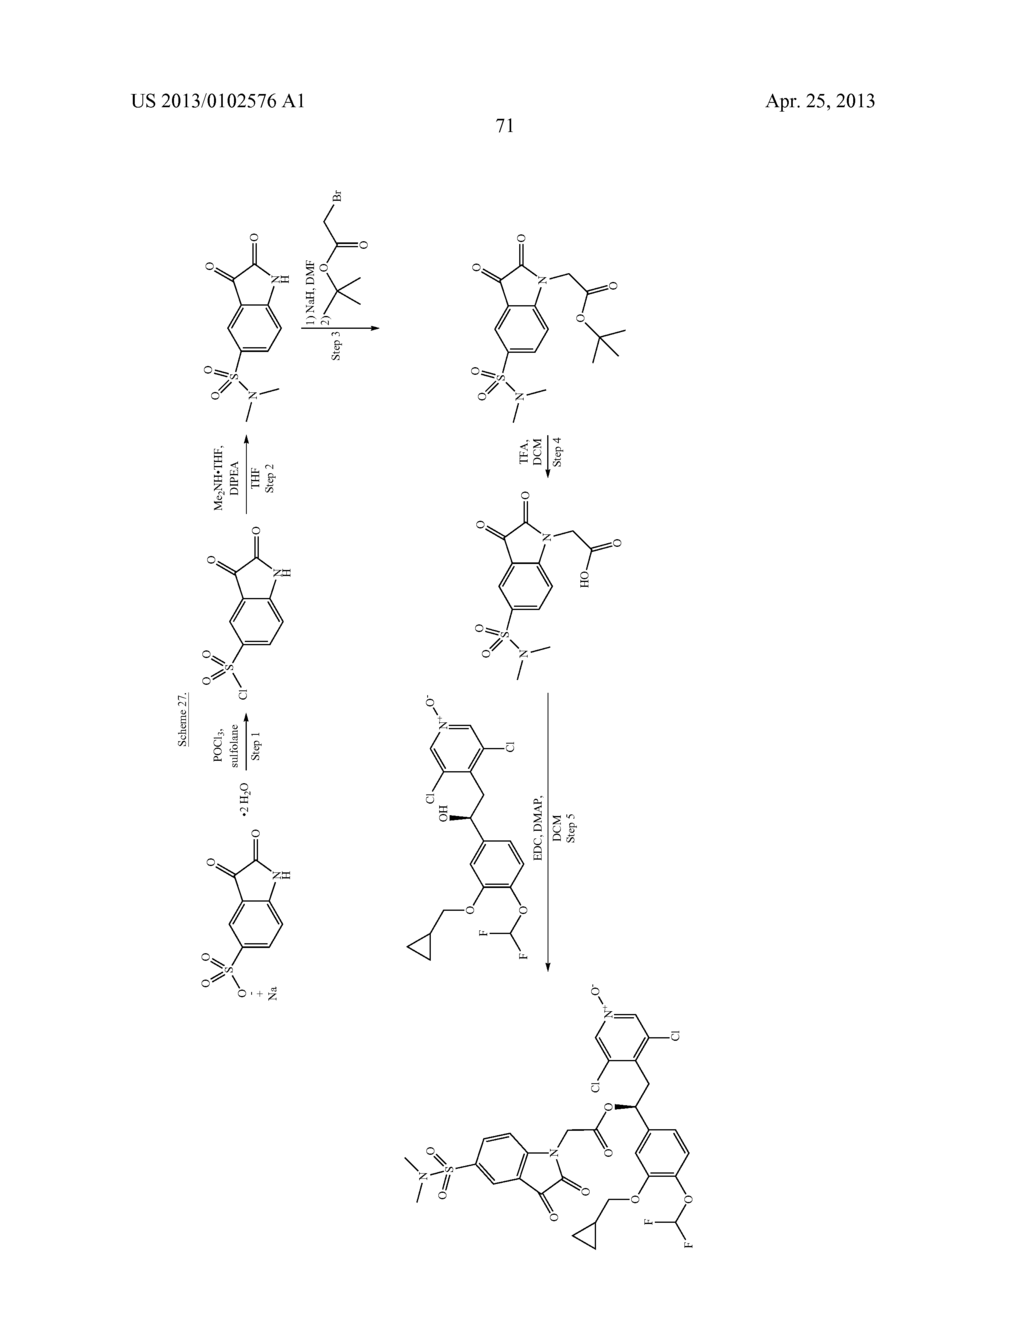 DERIVATIVES OF 1-PHENYL-2-PYRIDINYL ALKYL ALCOHOLS AS PHOSPHODIESTERASE     INHIBITORS - diagram, schematic, and image 72